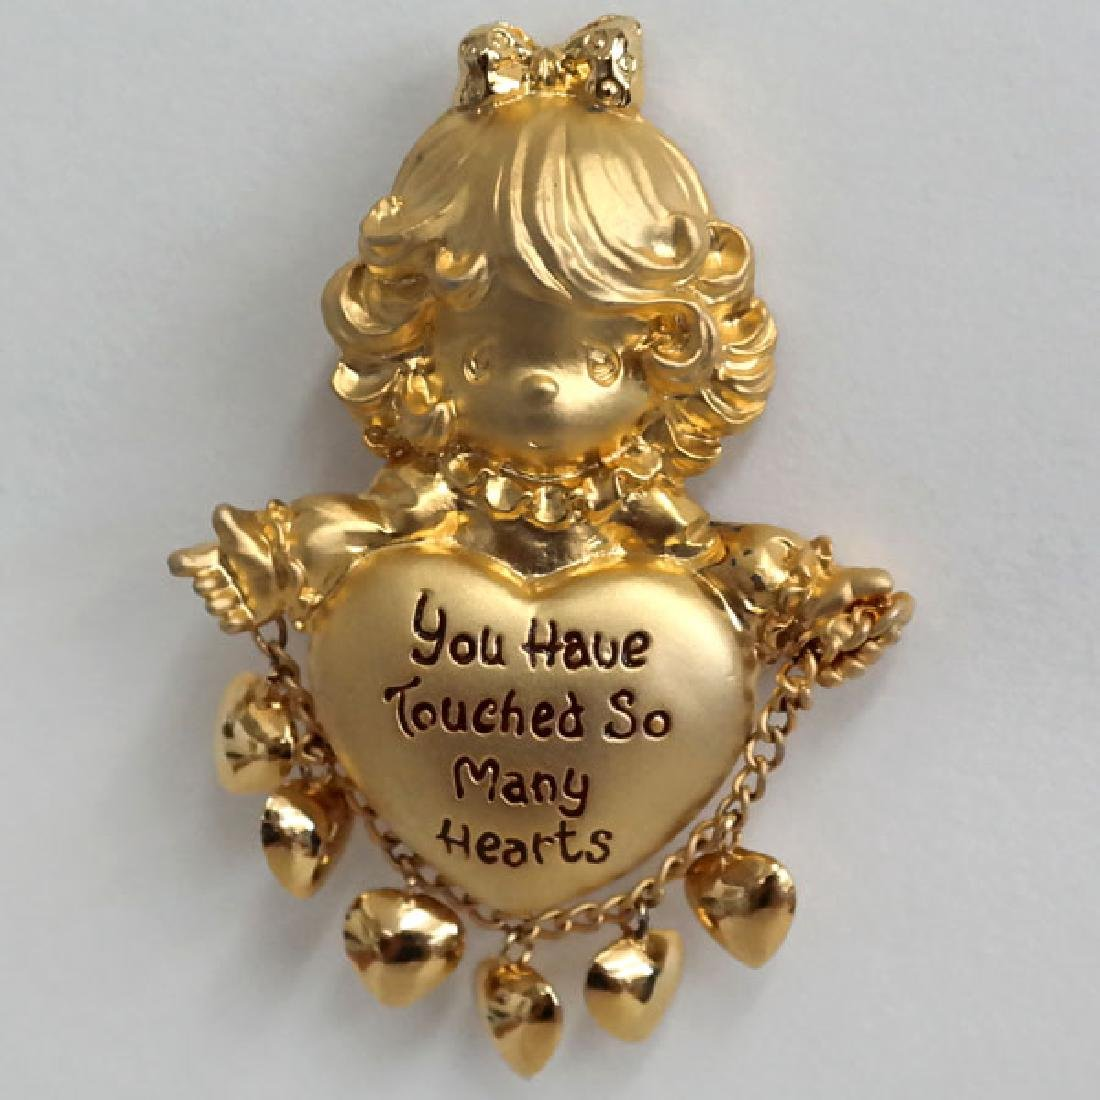 Gold plated satin and shiny finish SMALL GIRL shaped